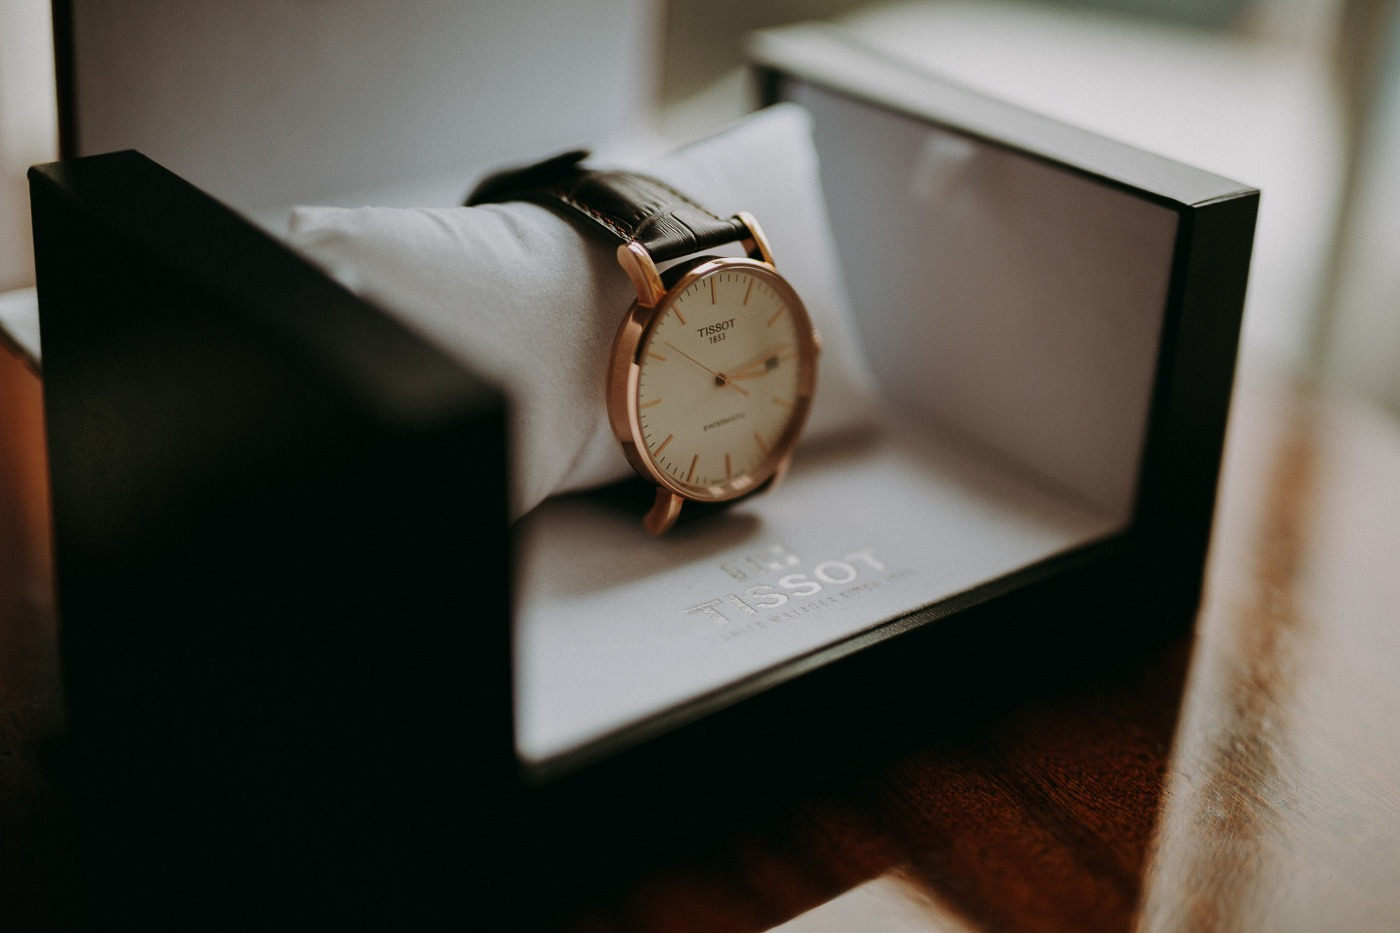 A small clock sitting on top of a desk